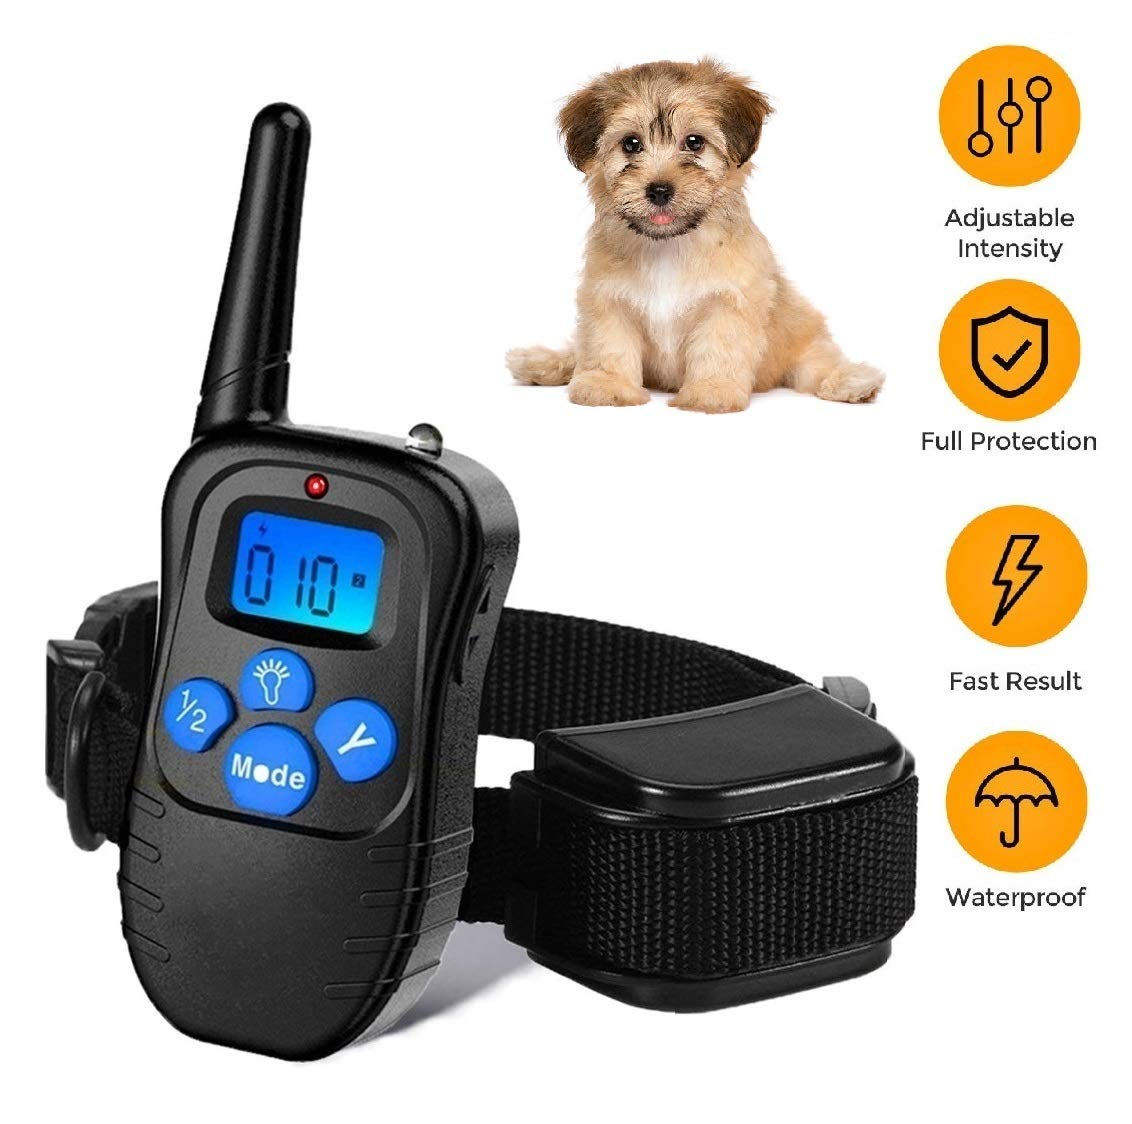 Dog Training Collar Rechargeable Rainproof 330 yd Remote Dog Training Shock Collar -Vibration, Vibra Shock Electronic Collar,Shock and Tone with Backlight LCD by Runpettee